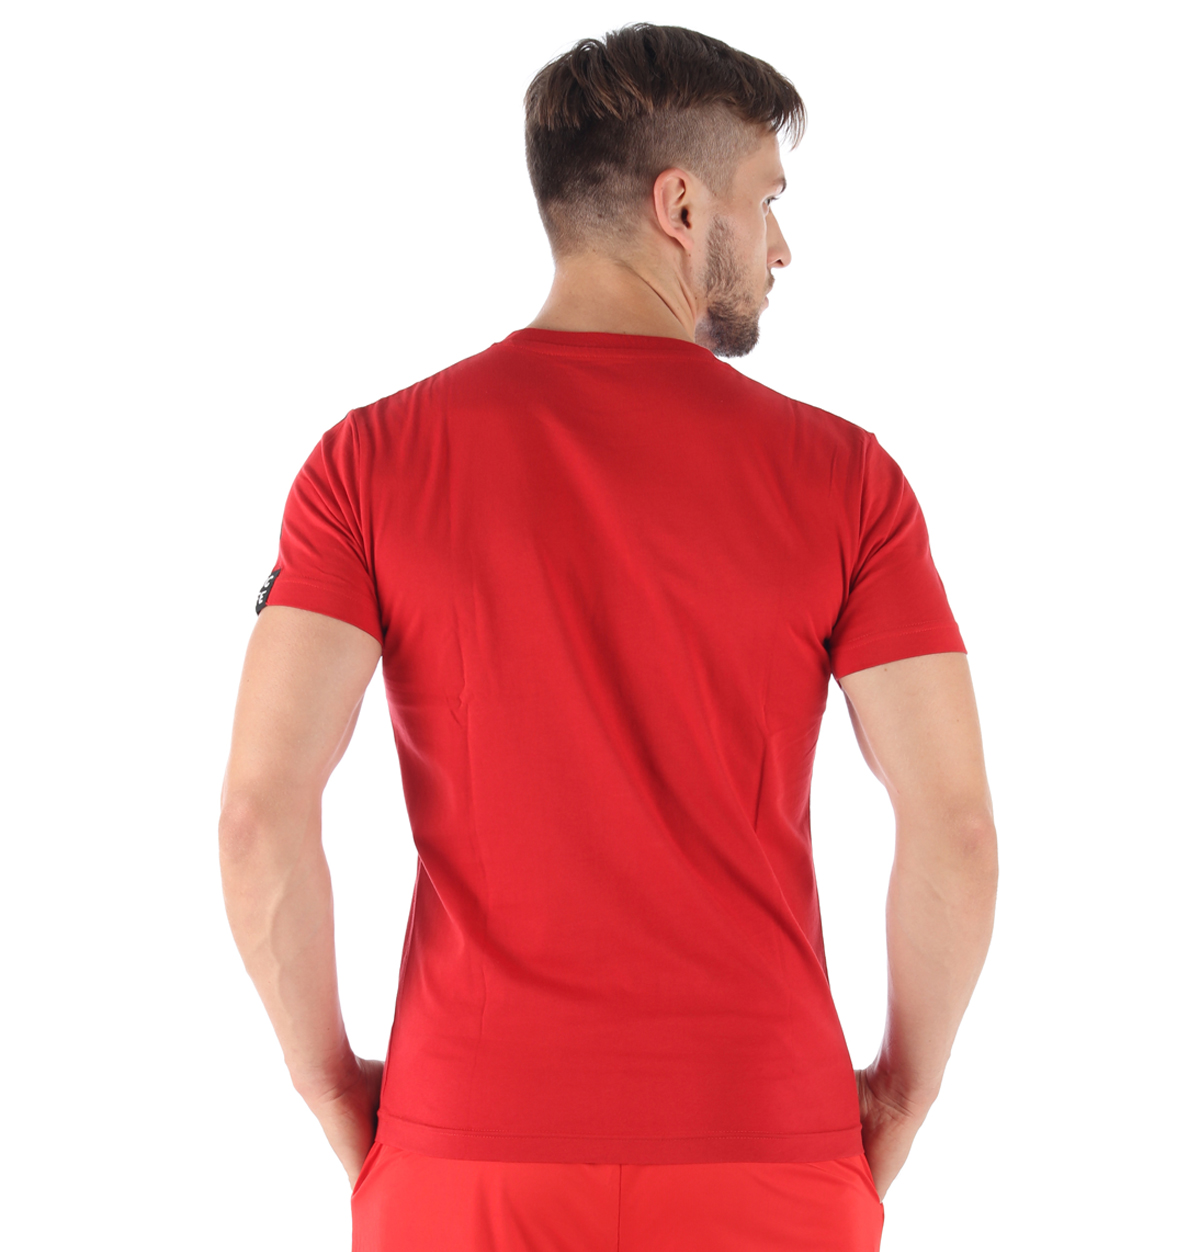 MRNT_V_STRIPE_RED_BACK.jpg